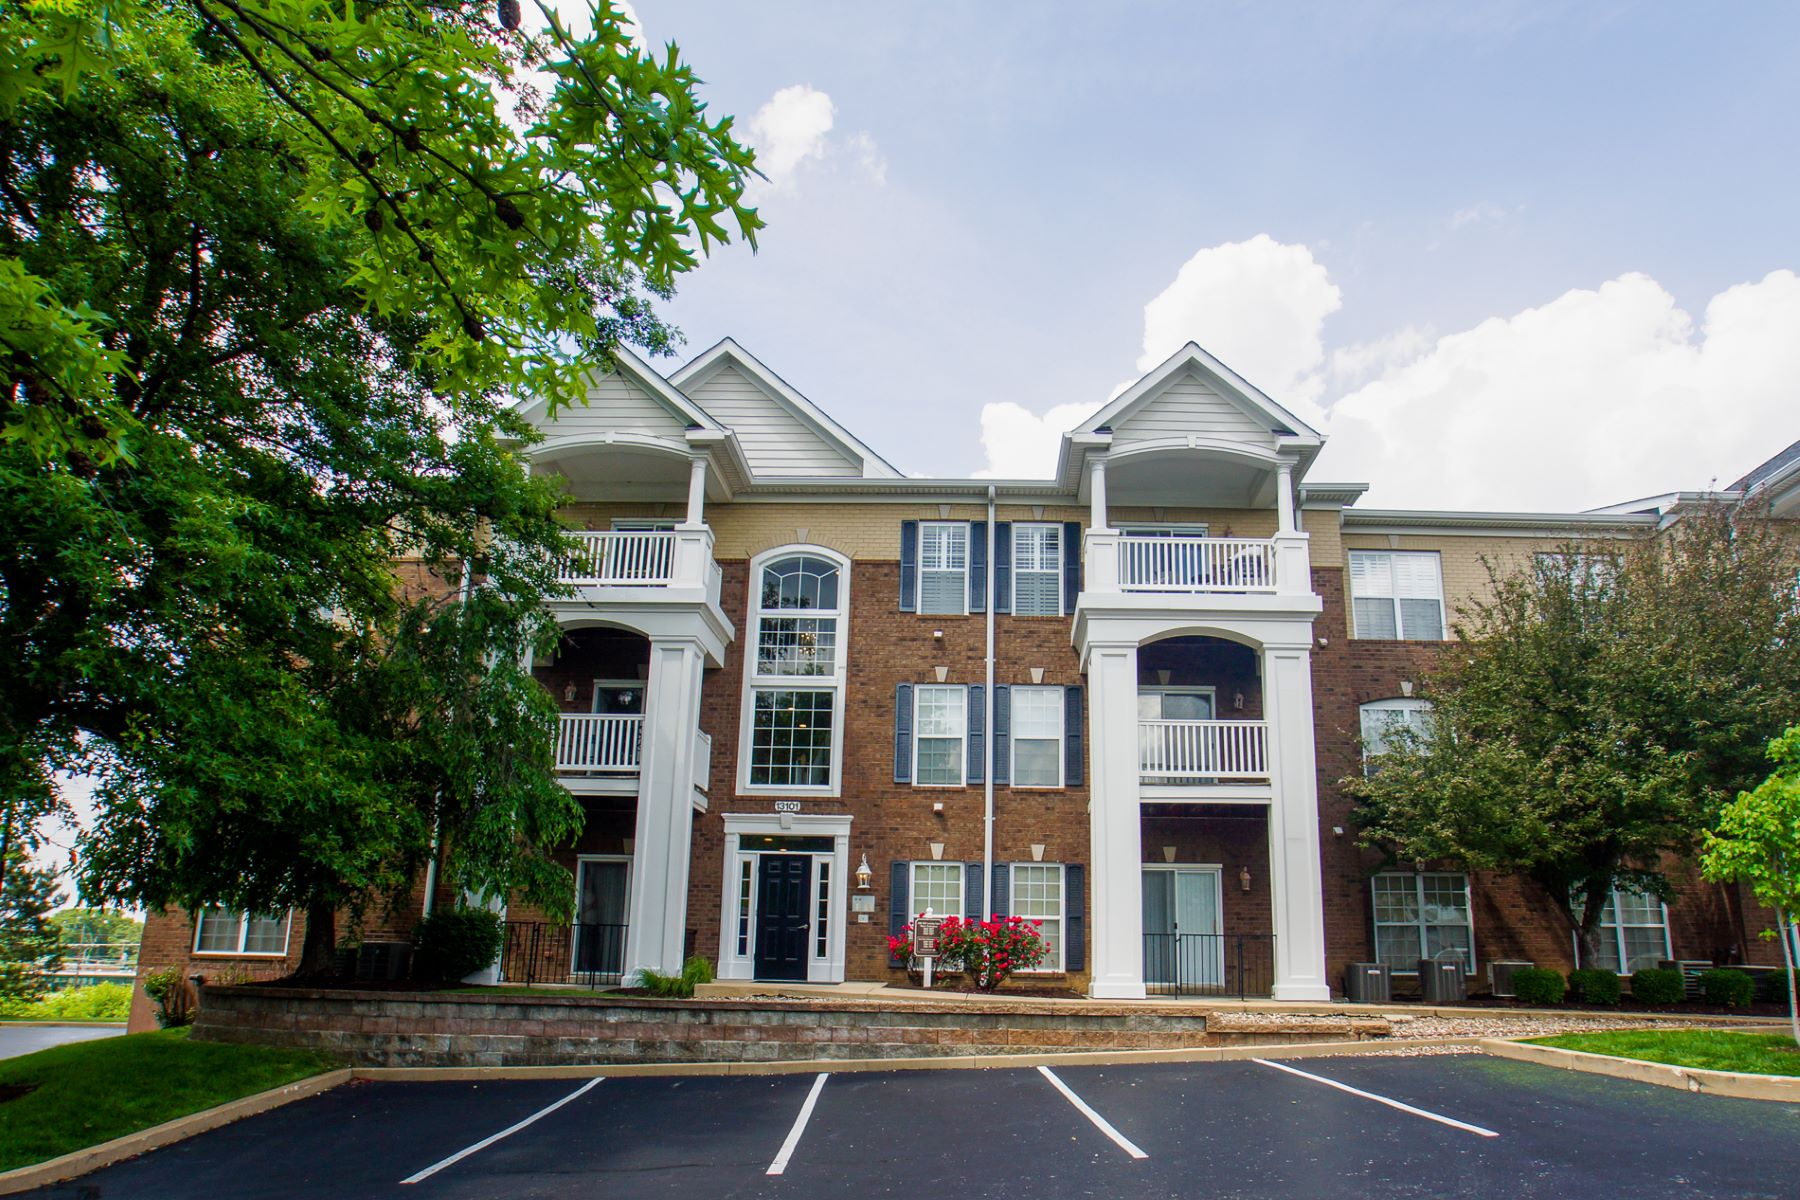 Lovely Creve Coeur Condo in a Gated Community 13101 Mill Crossing Court #104 Creve Coeur, Missouri 63141 United States